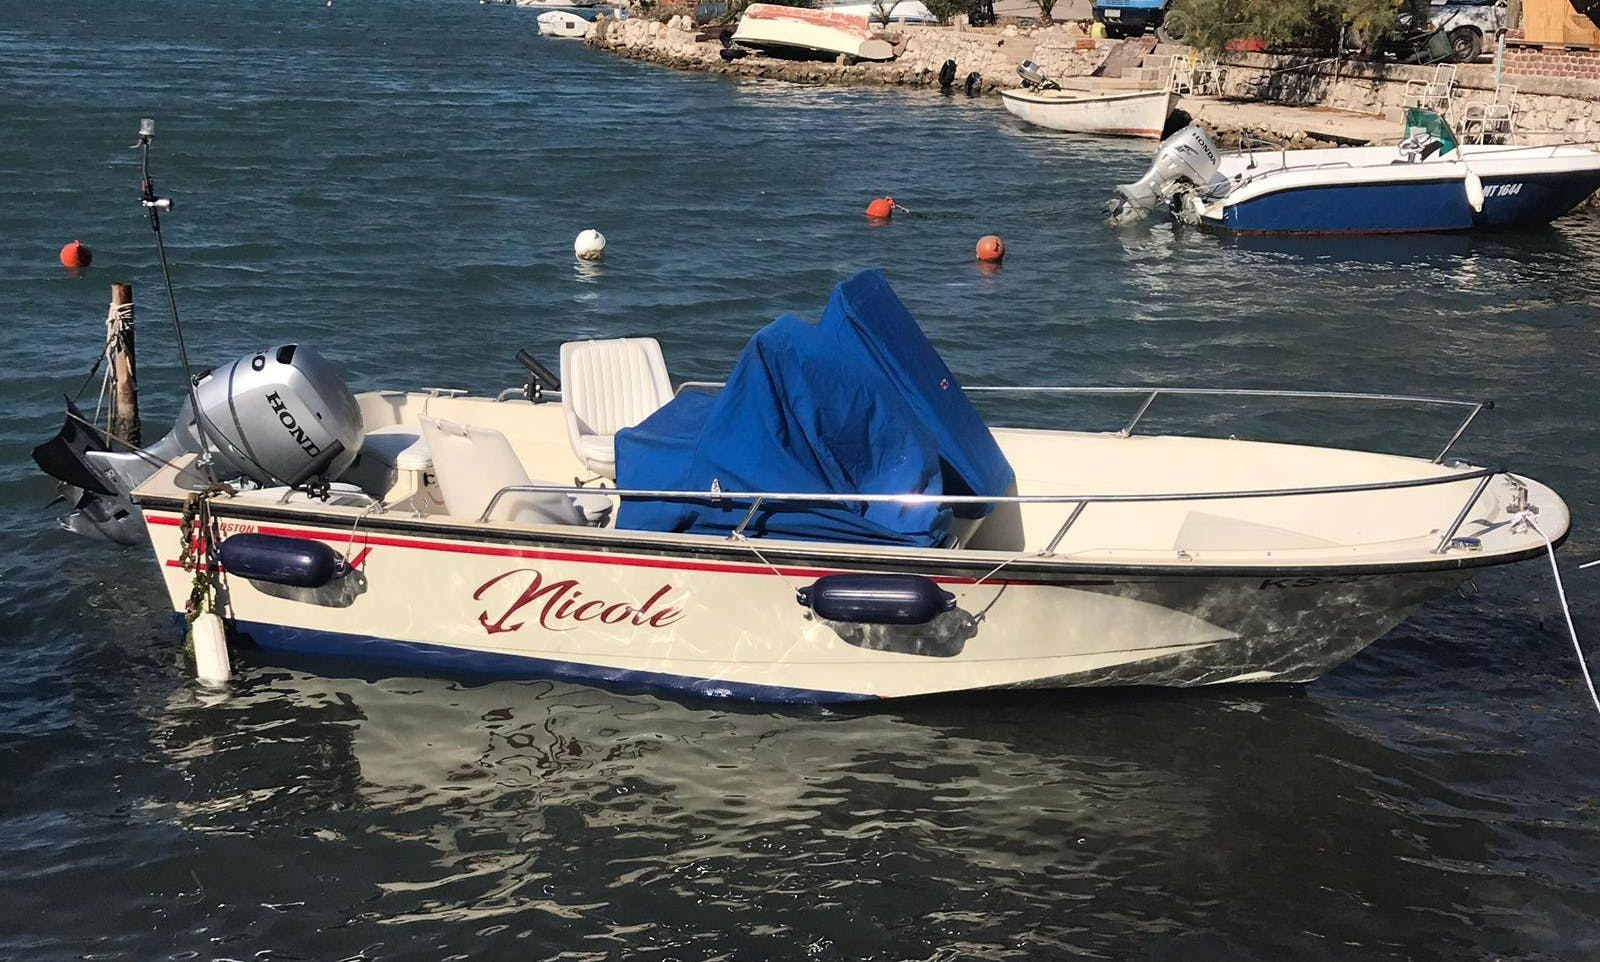 Rent this Boston Whaler 16SL in Blace, Croatia and go Fishing